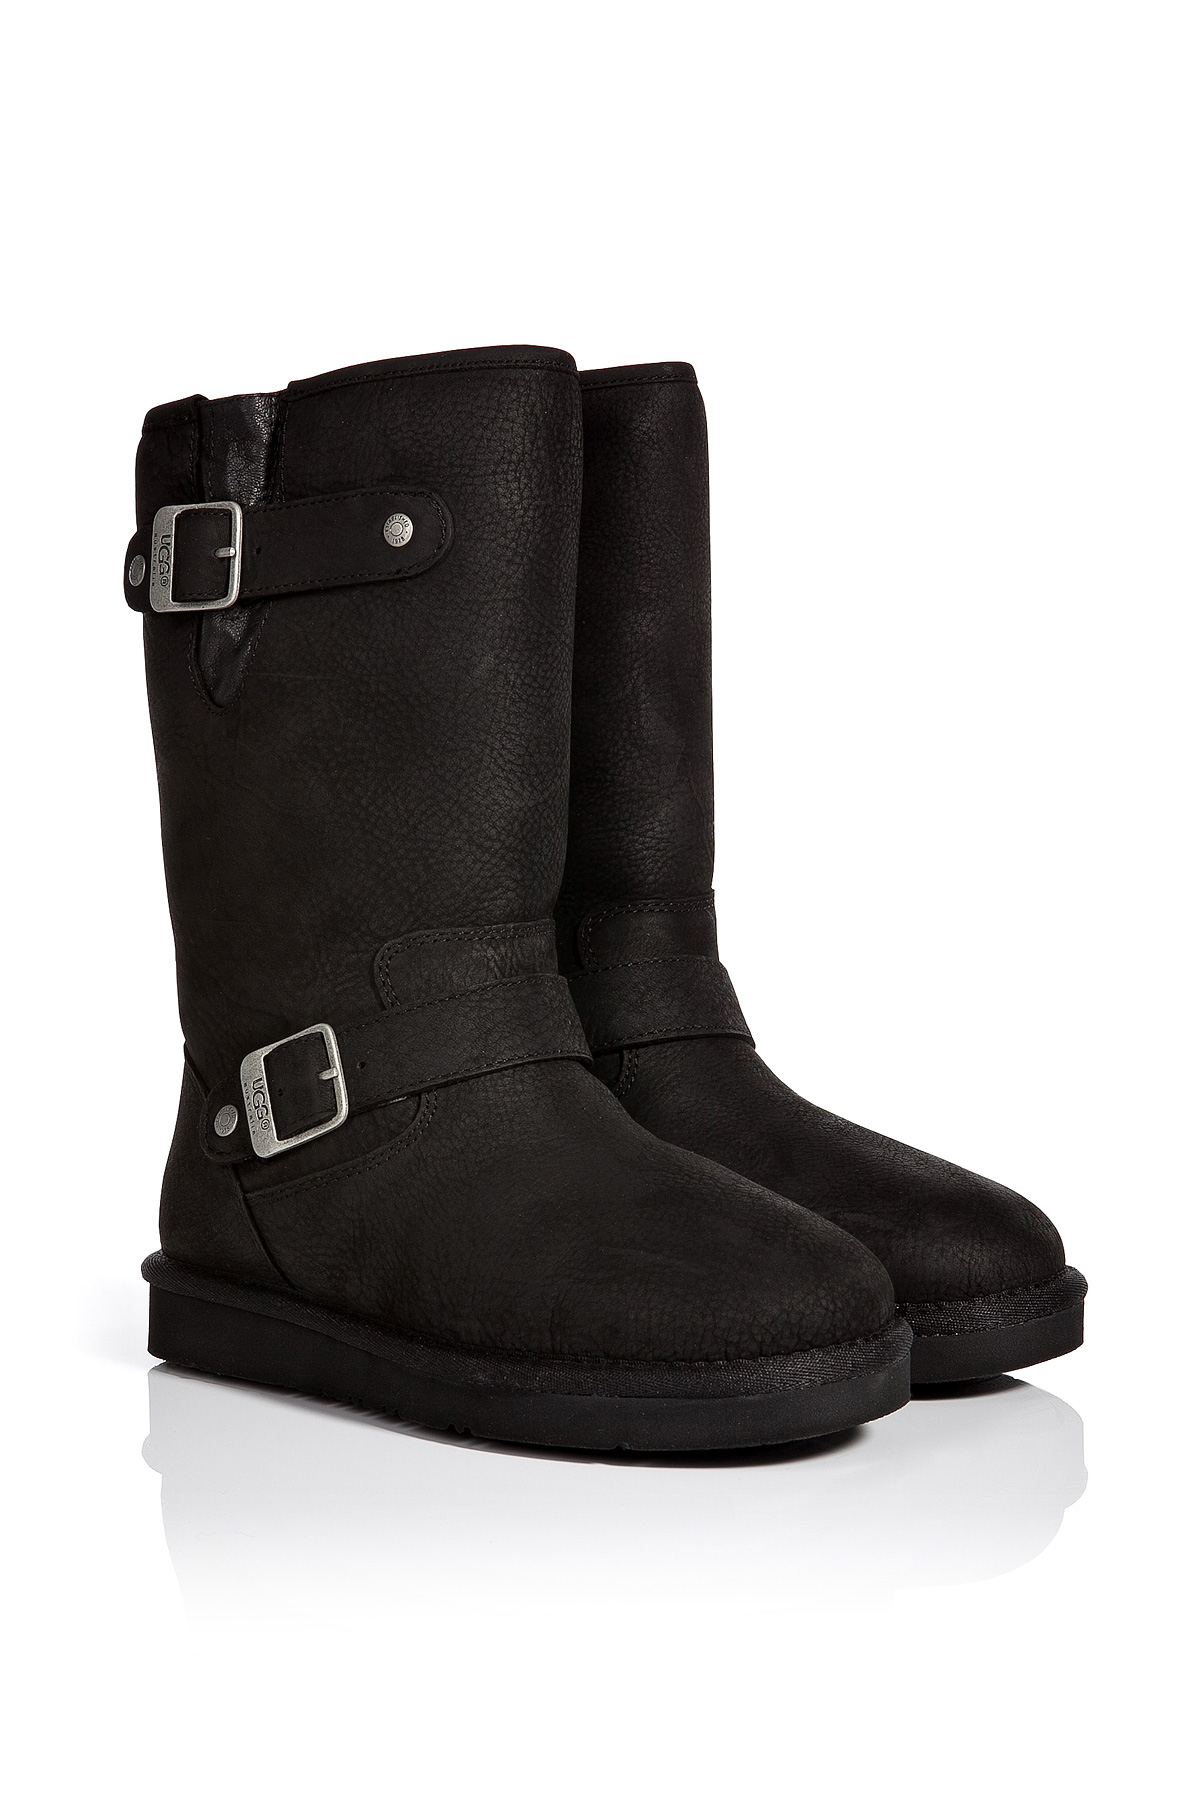 Find great deals on eBay for new look ugg boots. Shop with confidence.